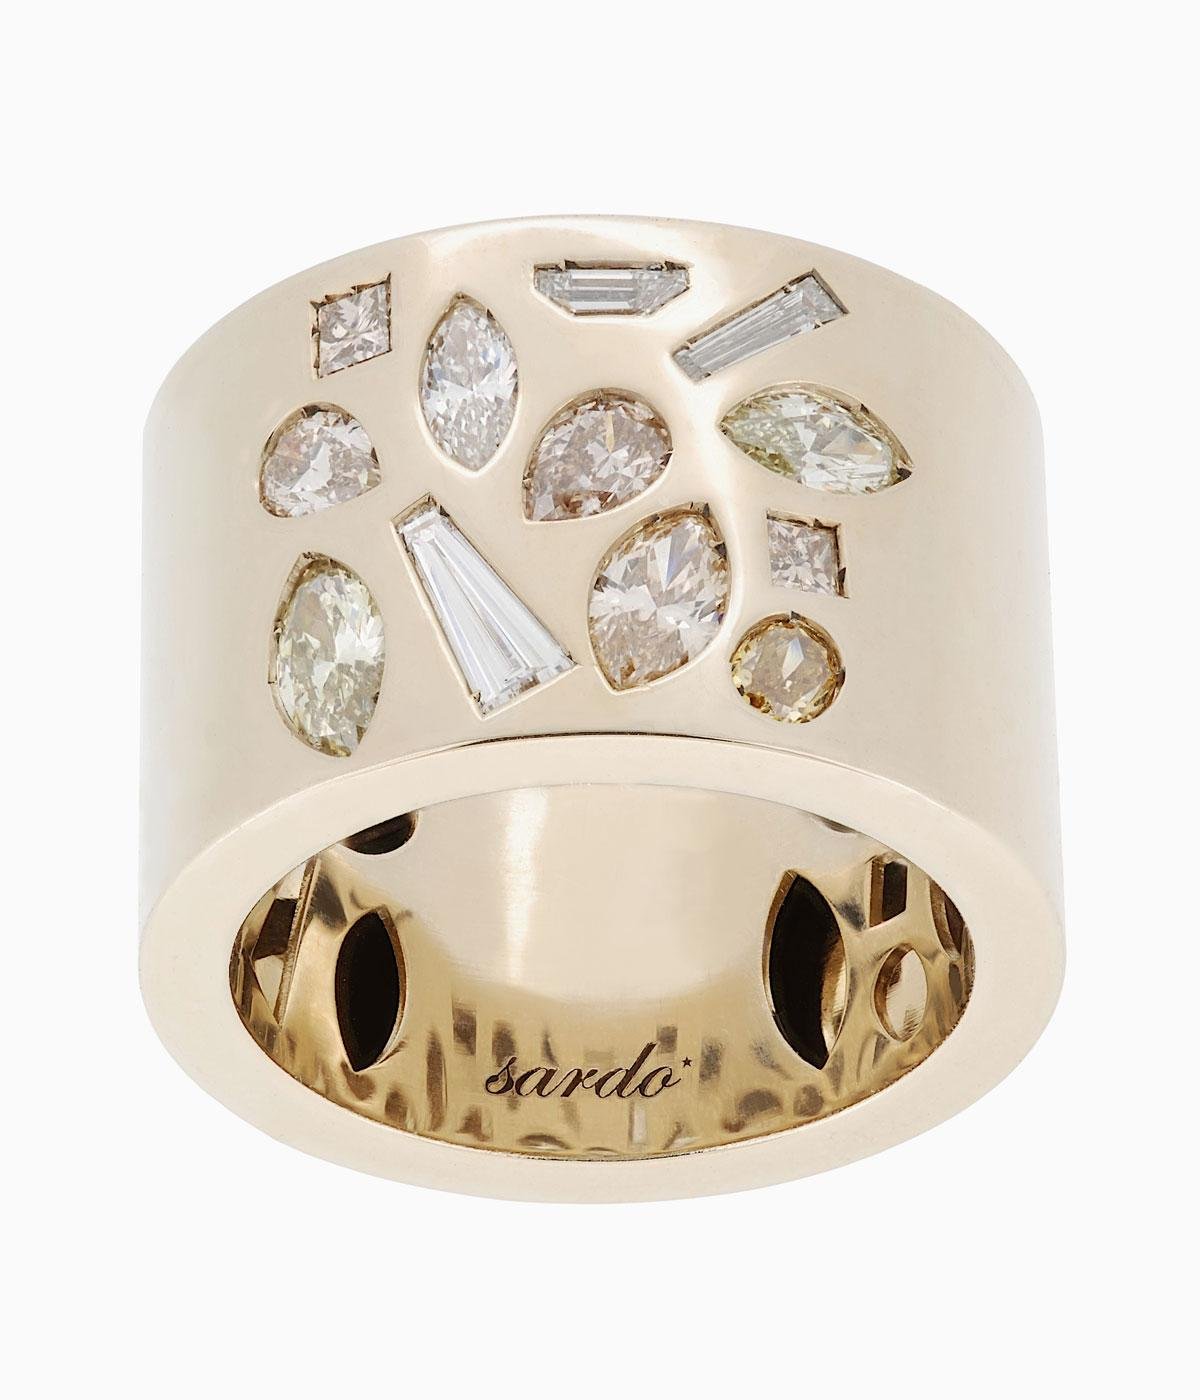 Gold ring with diamond petals in it